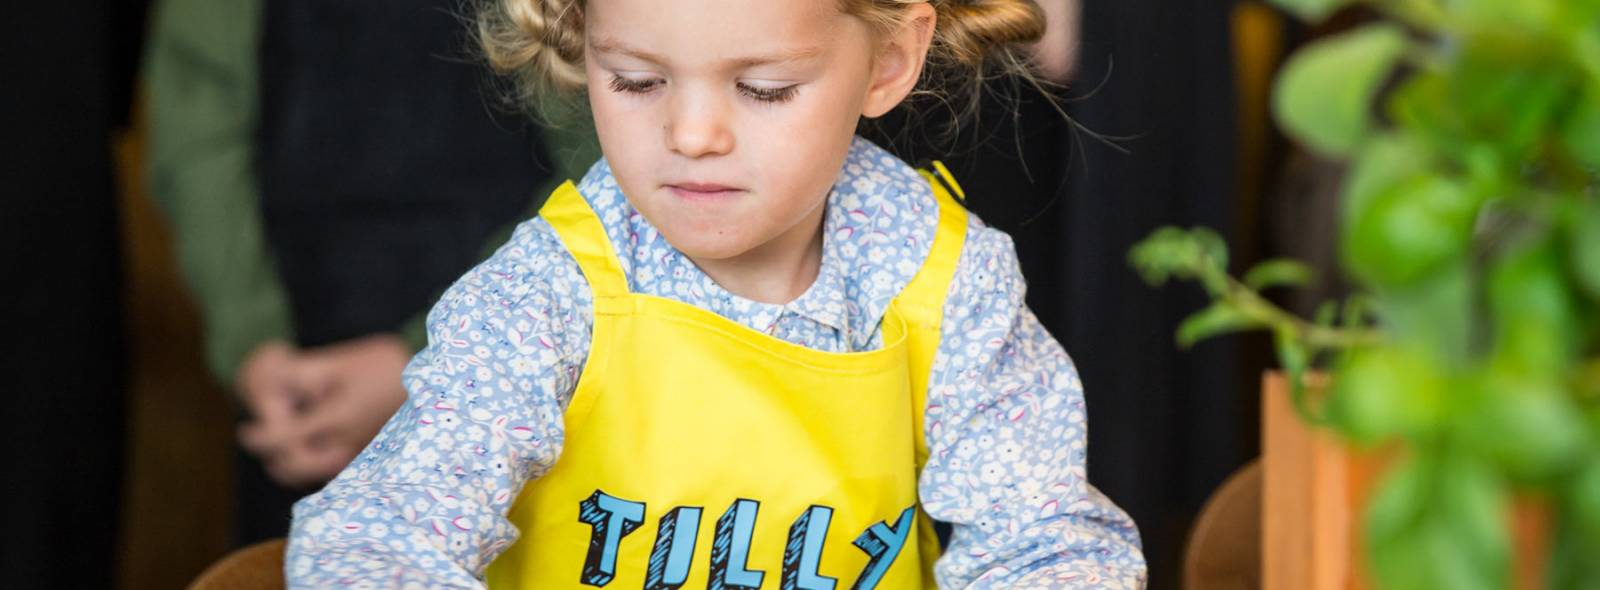 Tilly Kids Hub 2